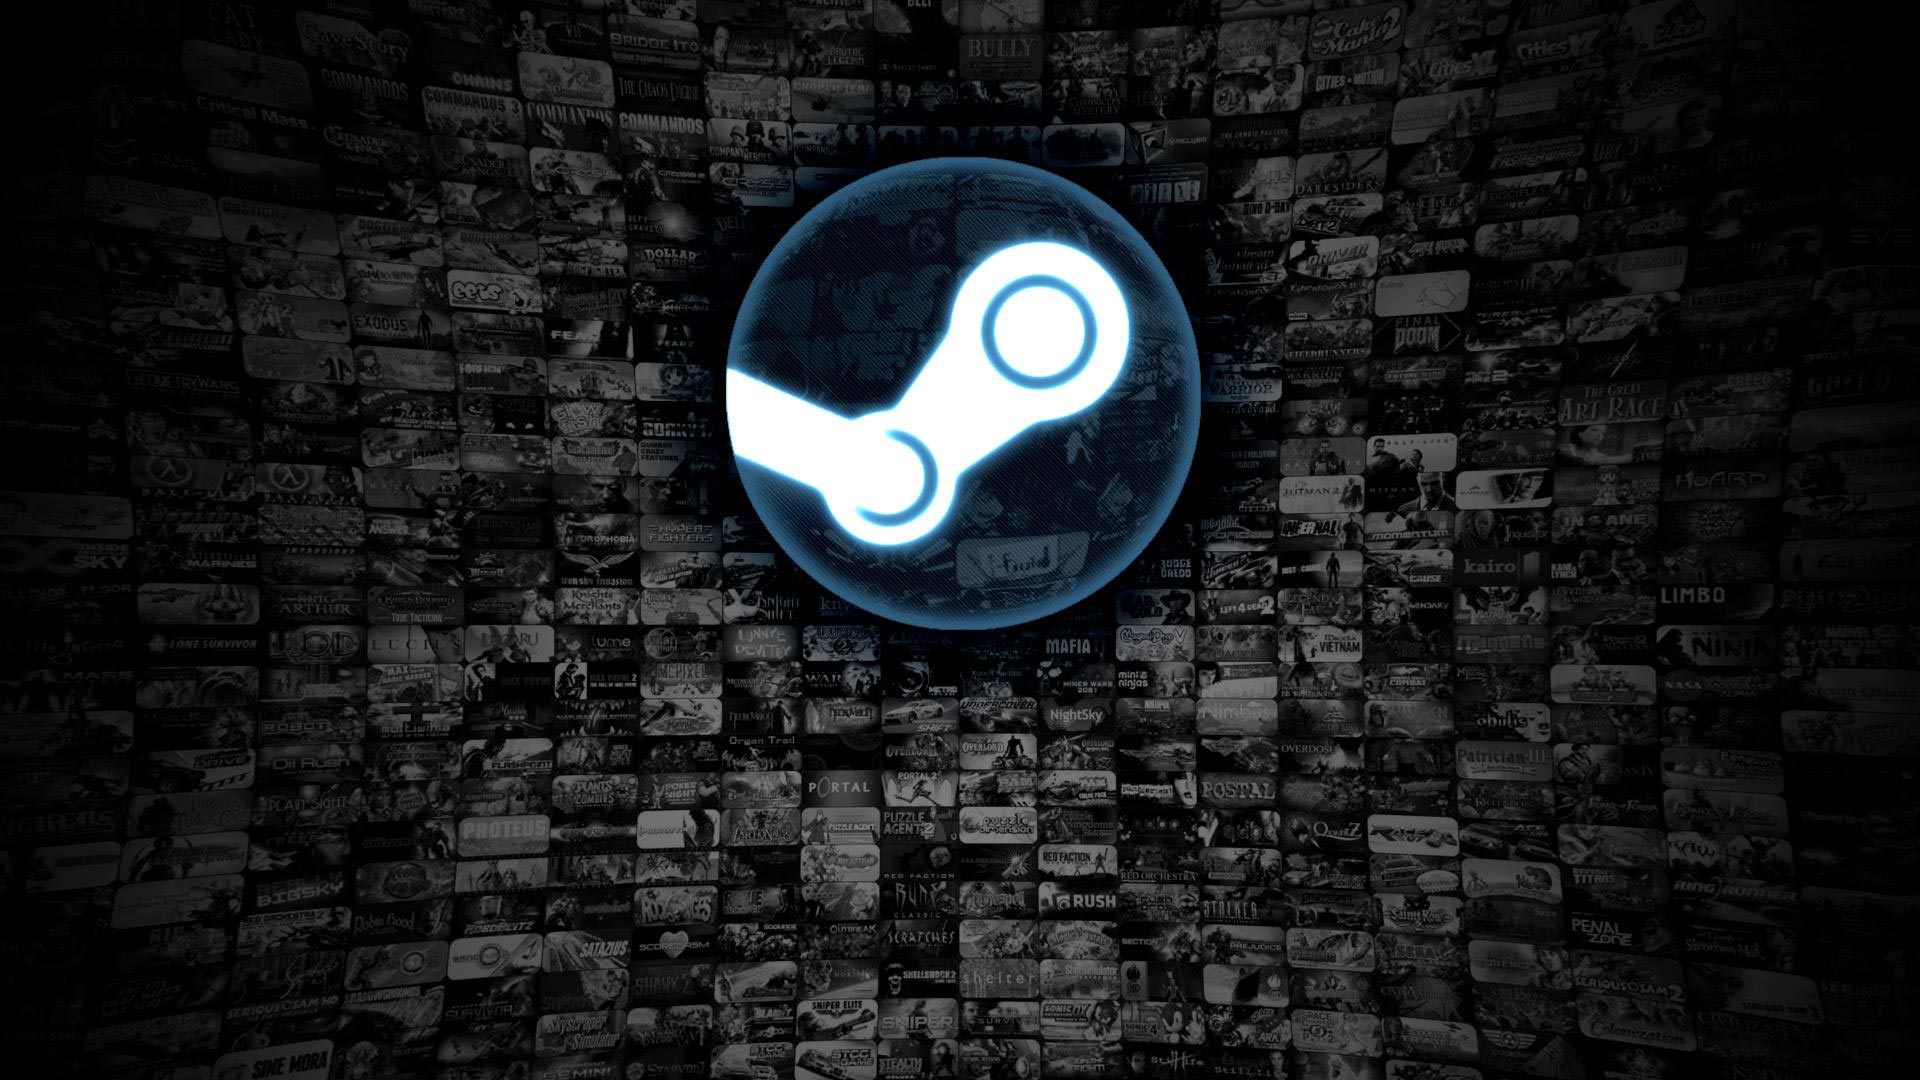 Steamos Games Perform Up To 58 Percent Worse Than Windows 10